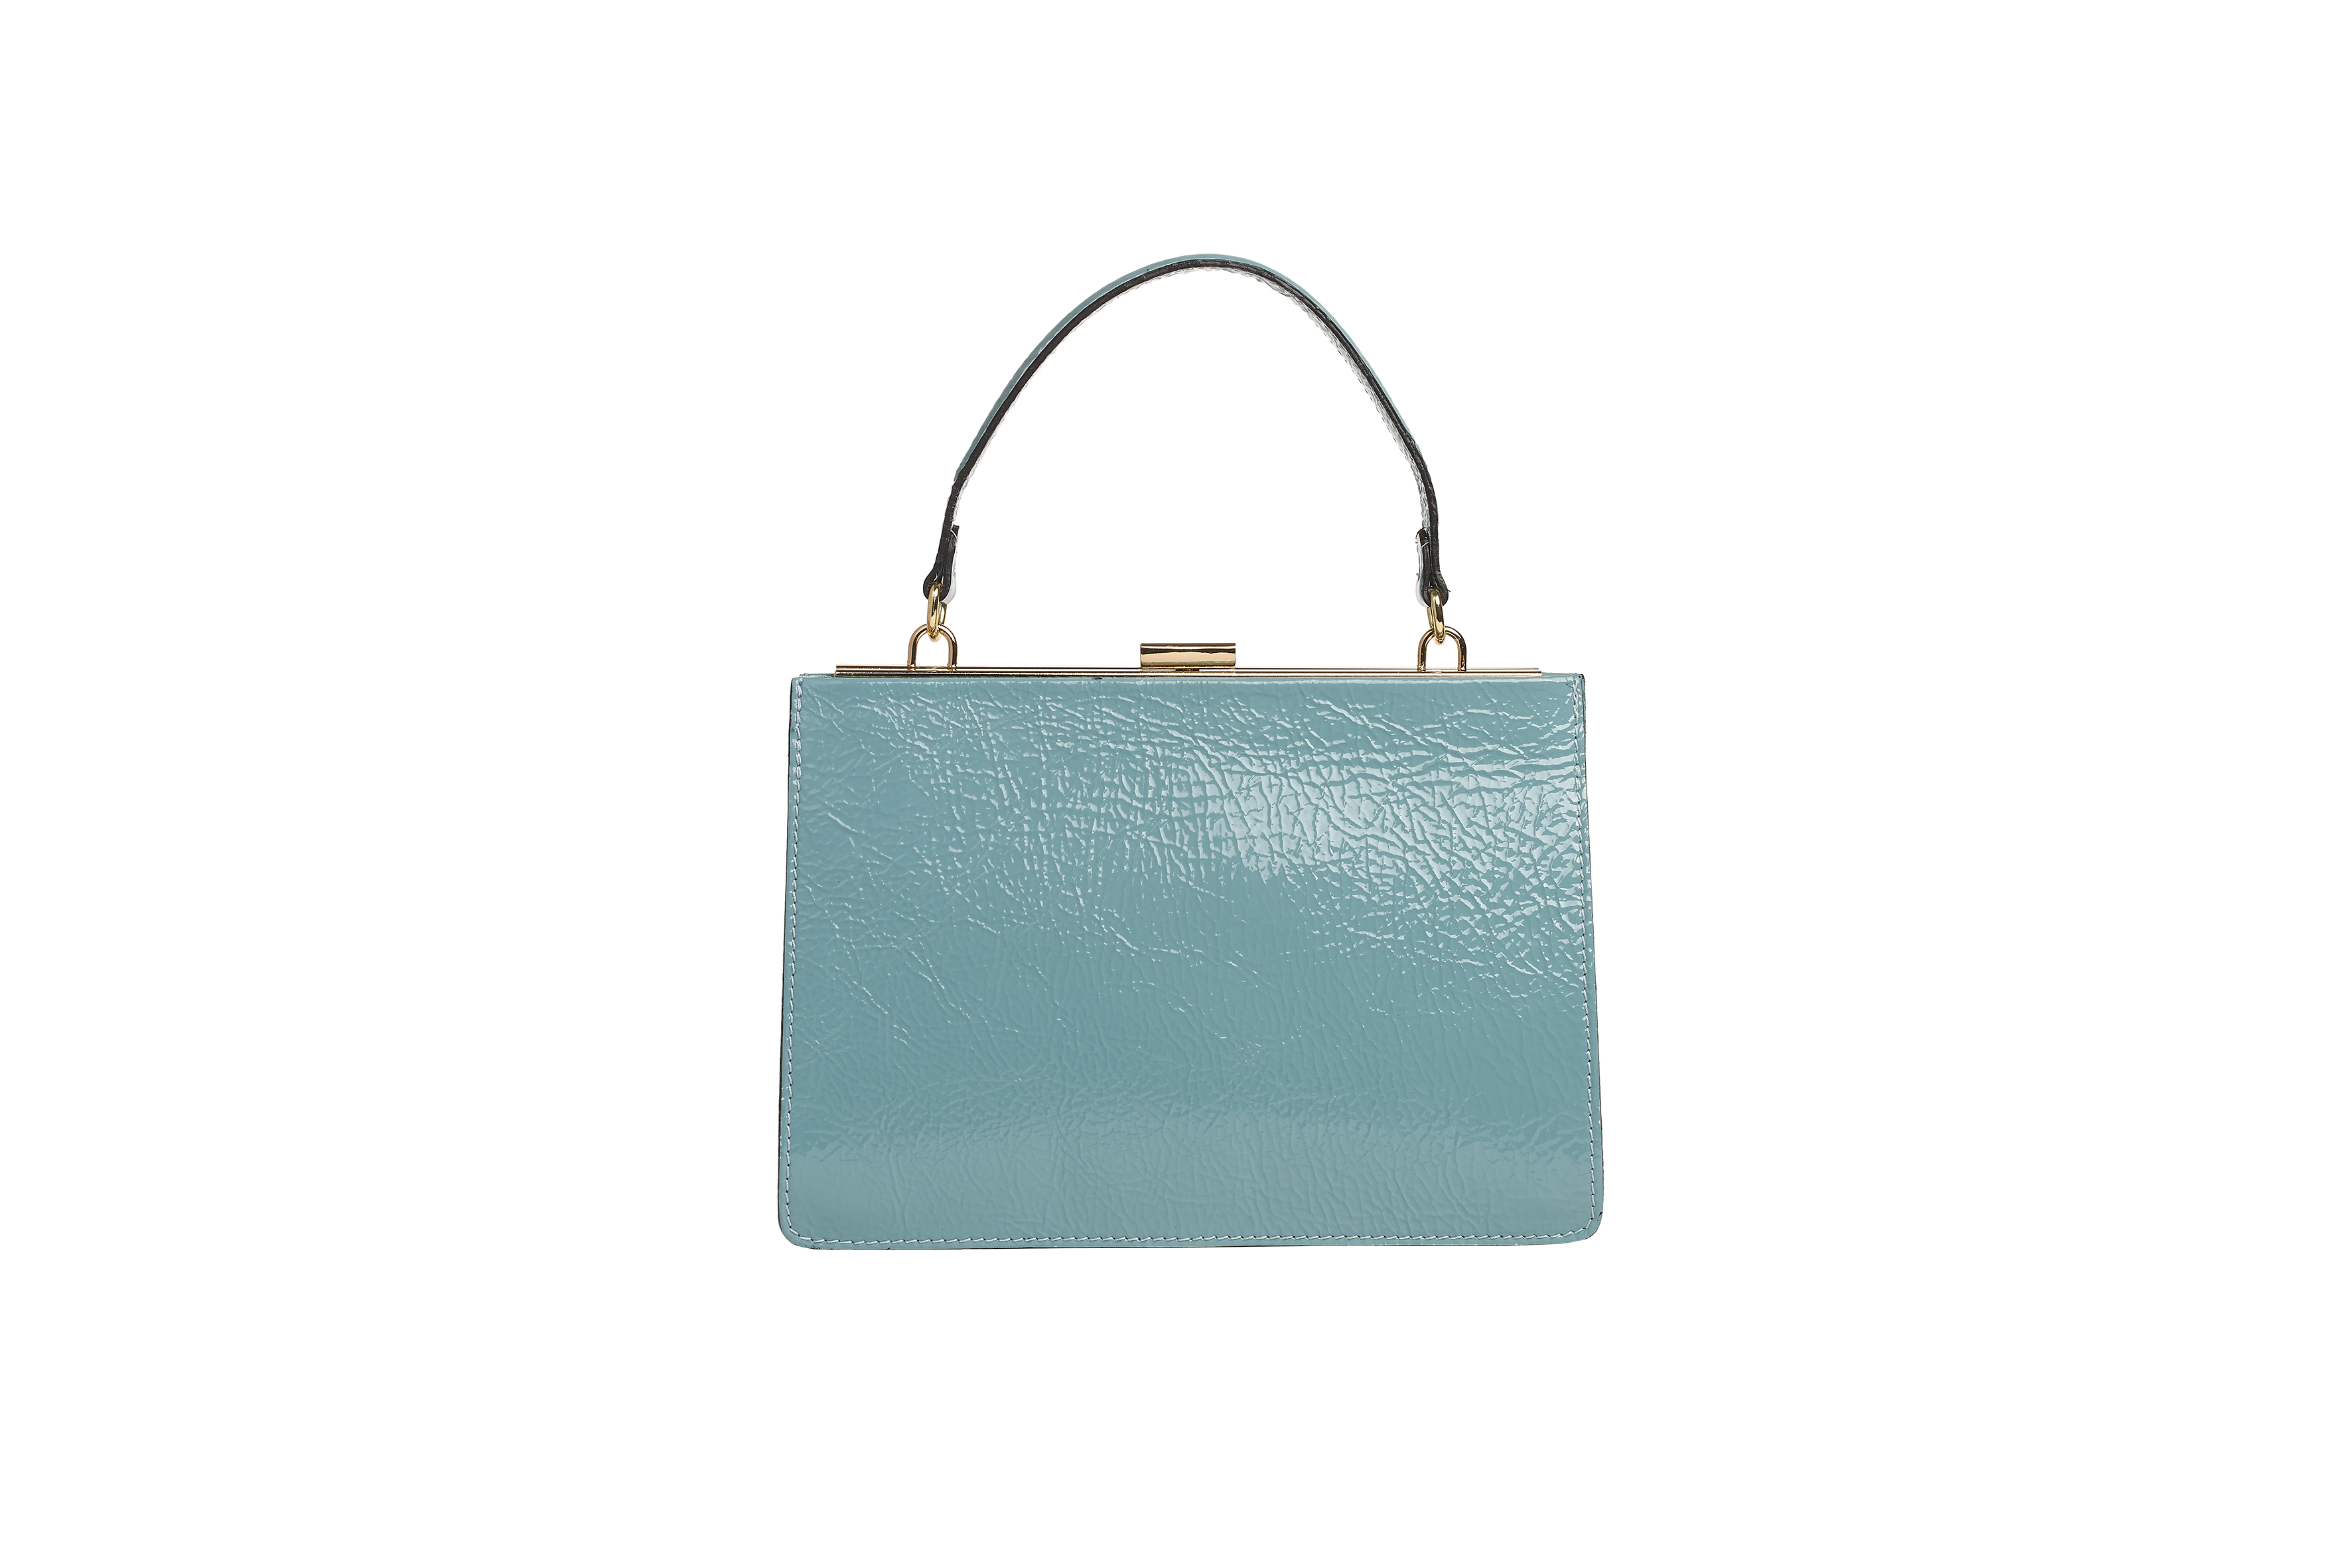 CURLY BAGS – NEO BAG